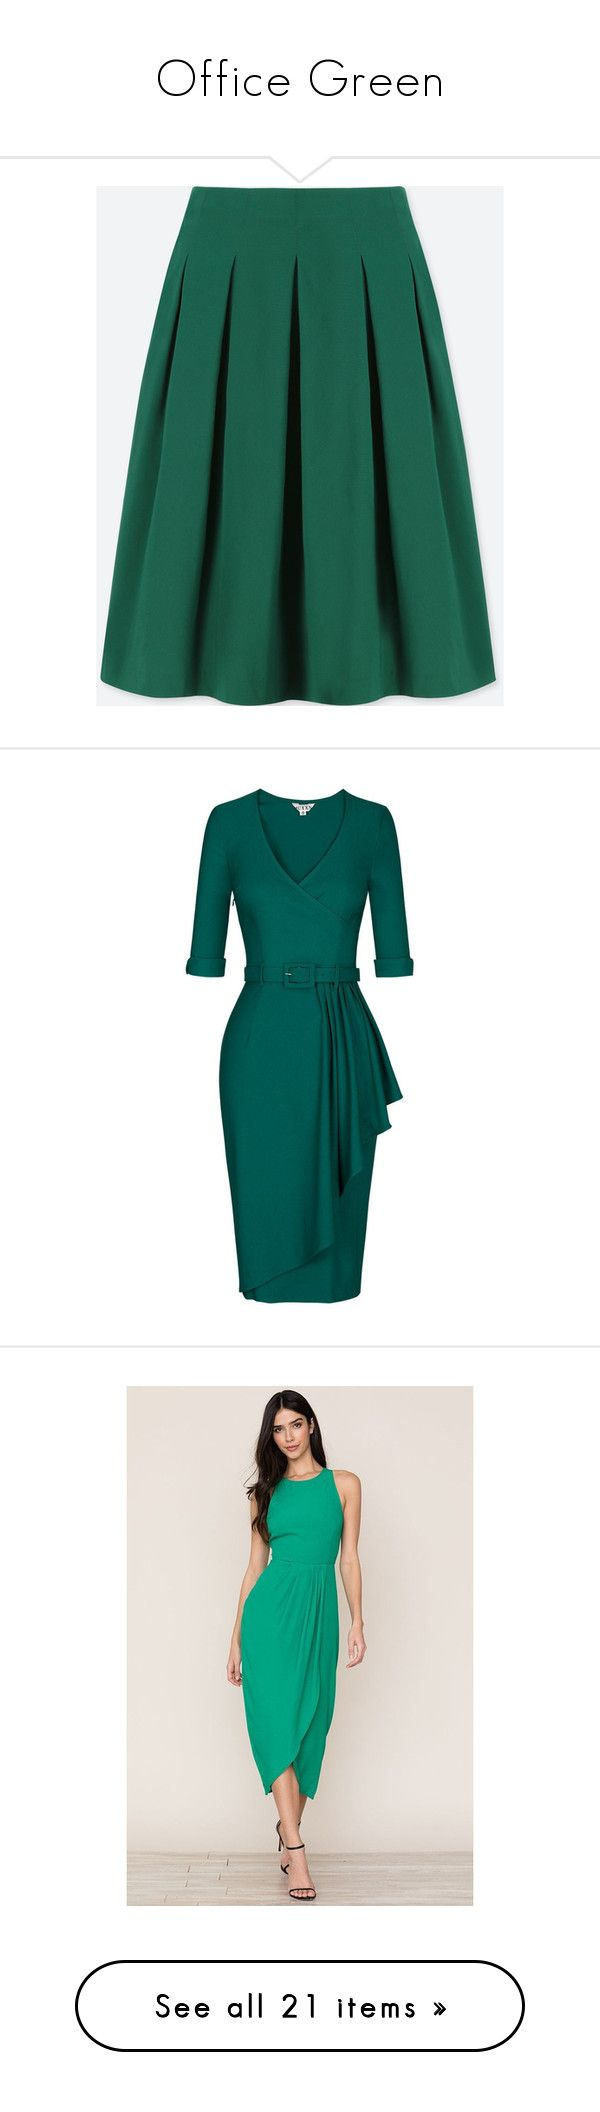 """Office Green"" by greensparkle1 ❤ liked on Polyvore featuring skirts, dark green, knee length skirts, holiday skirts, knee high skirts, high-waisted skirt, dark green skirt, dresses, green and pink evening dress"